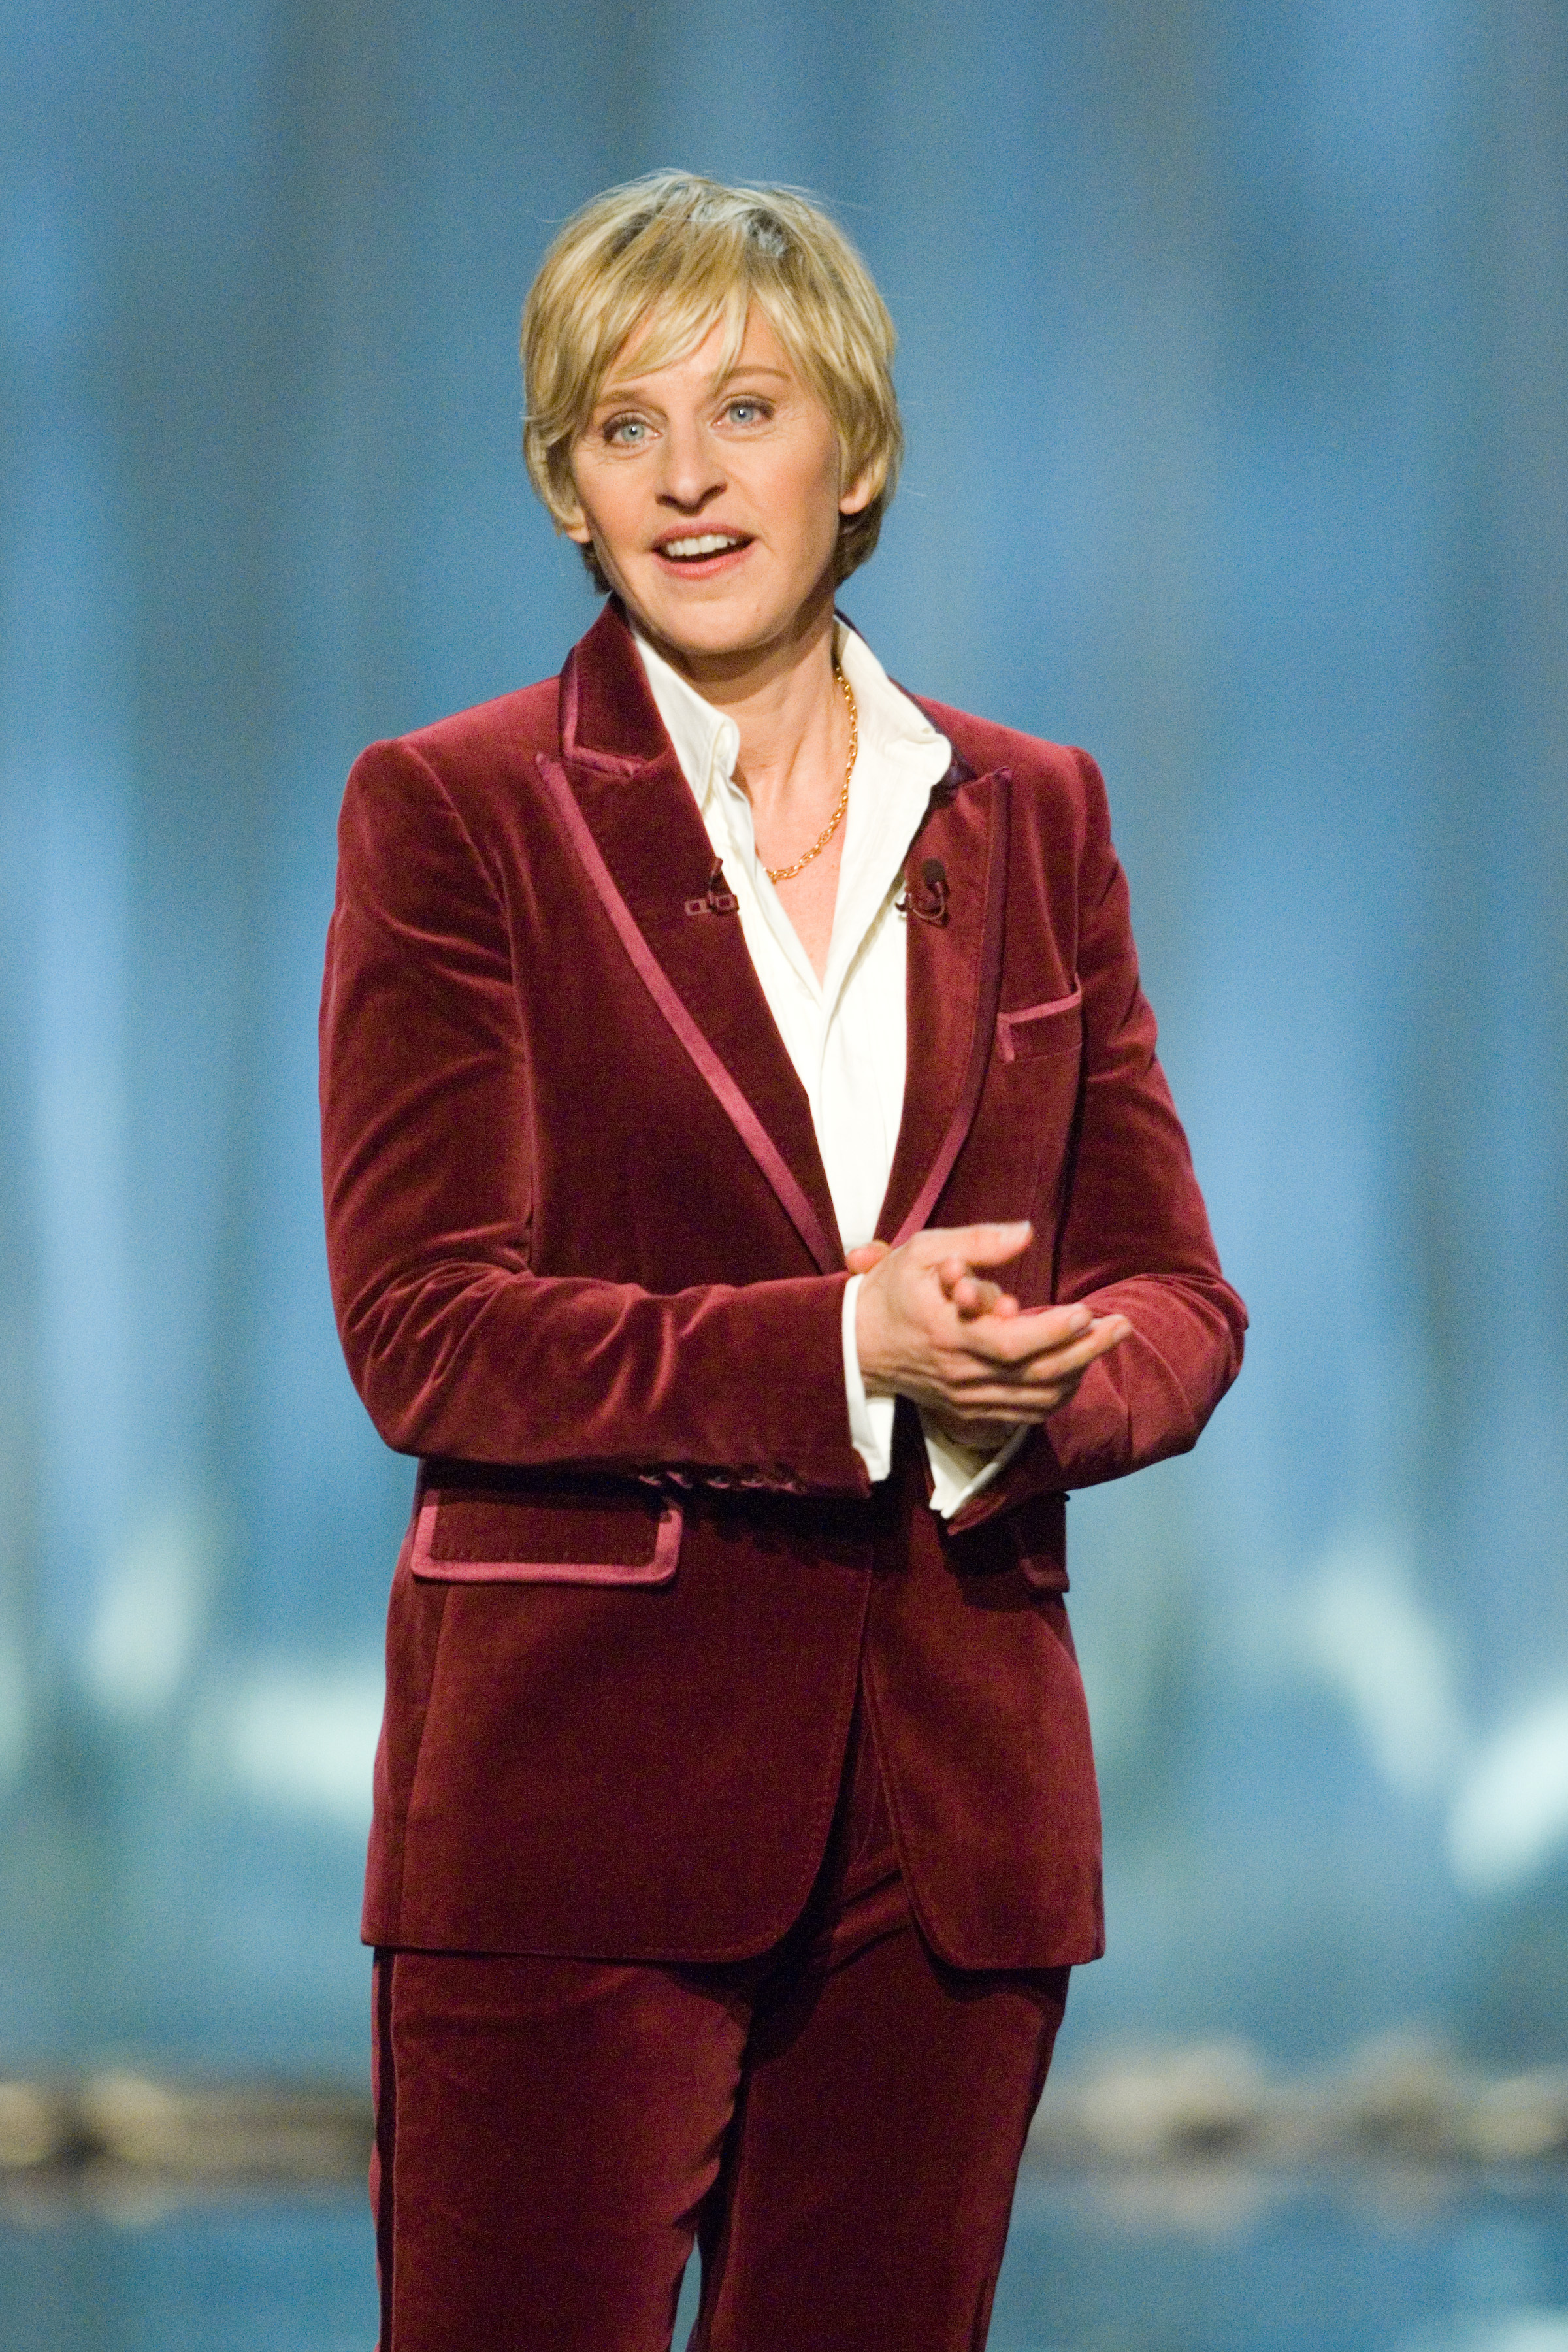 Ellen DeGeneres to host the 2014 Academy Awards